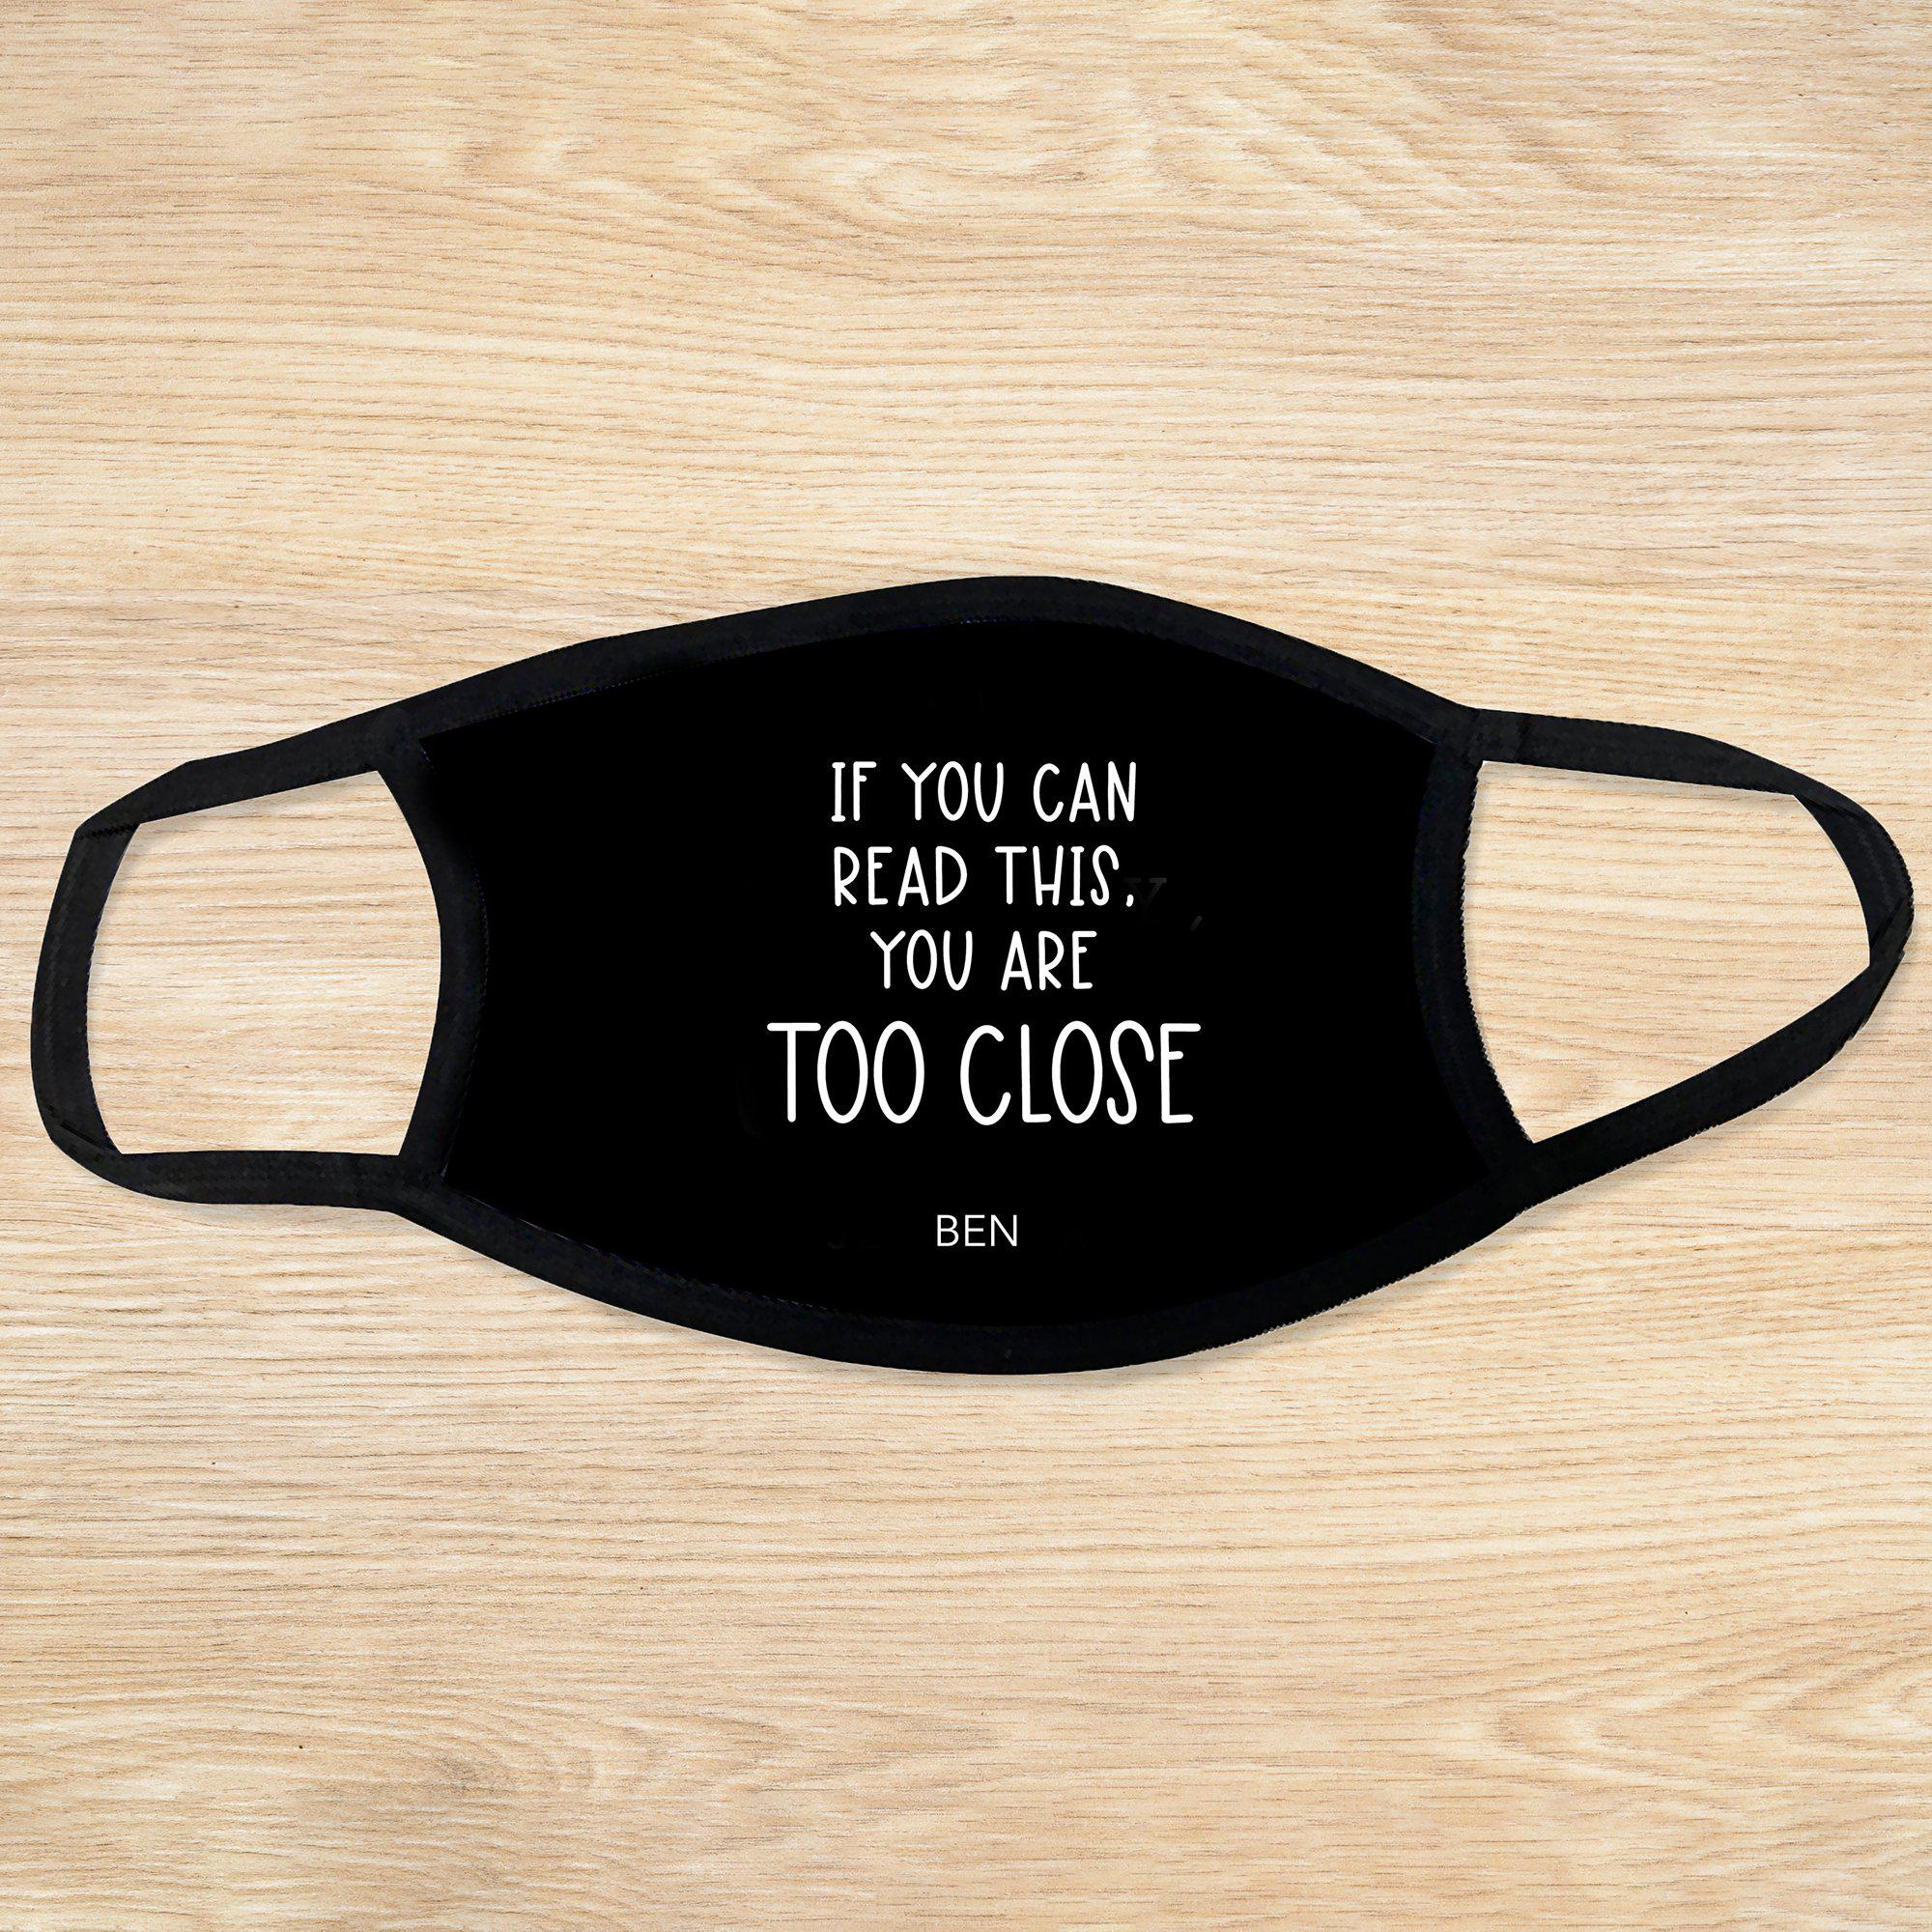 Personalized Reusable Face Coverings - Quotes Collection